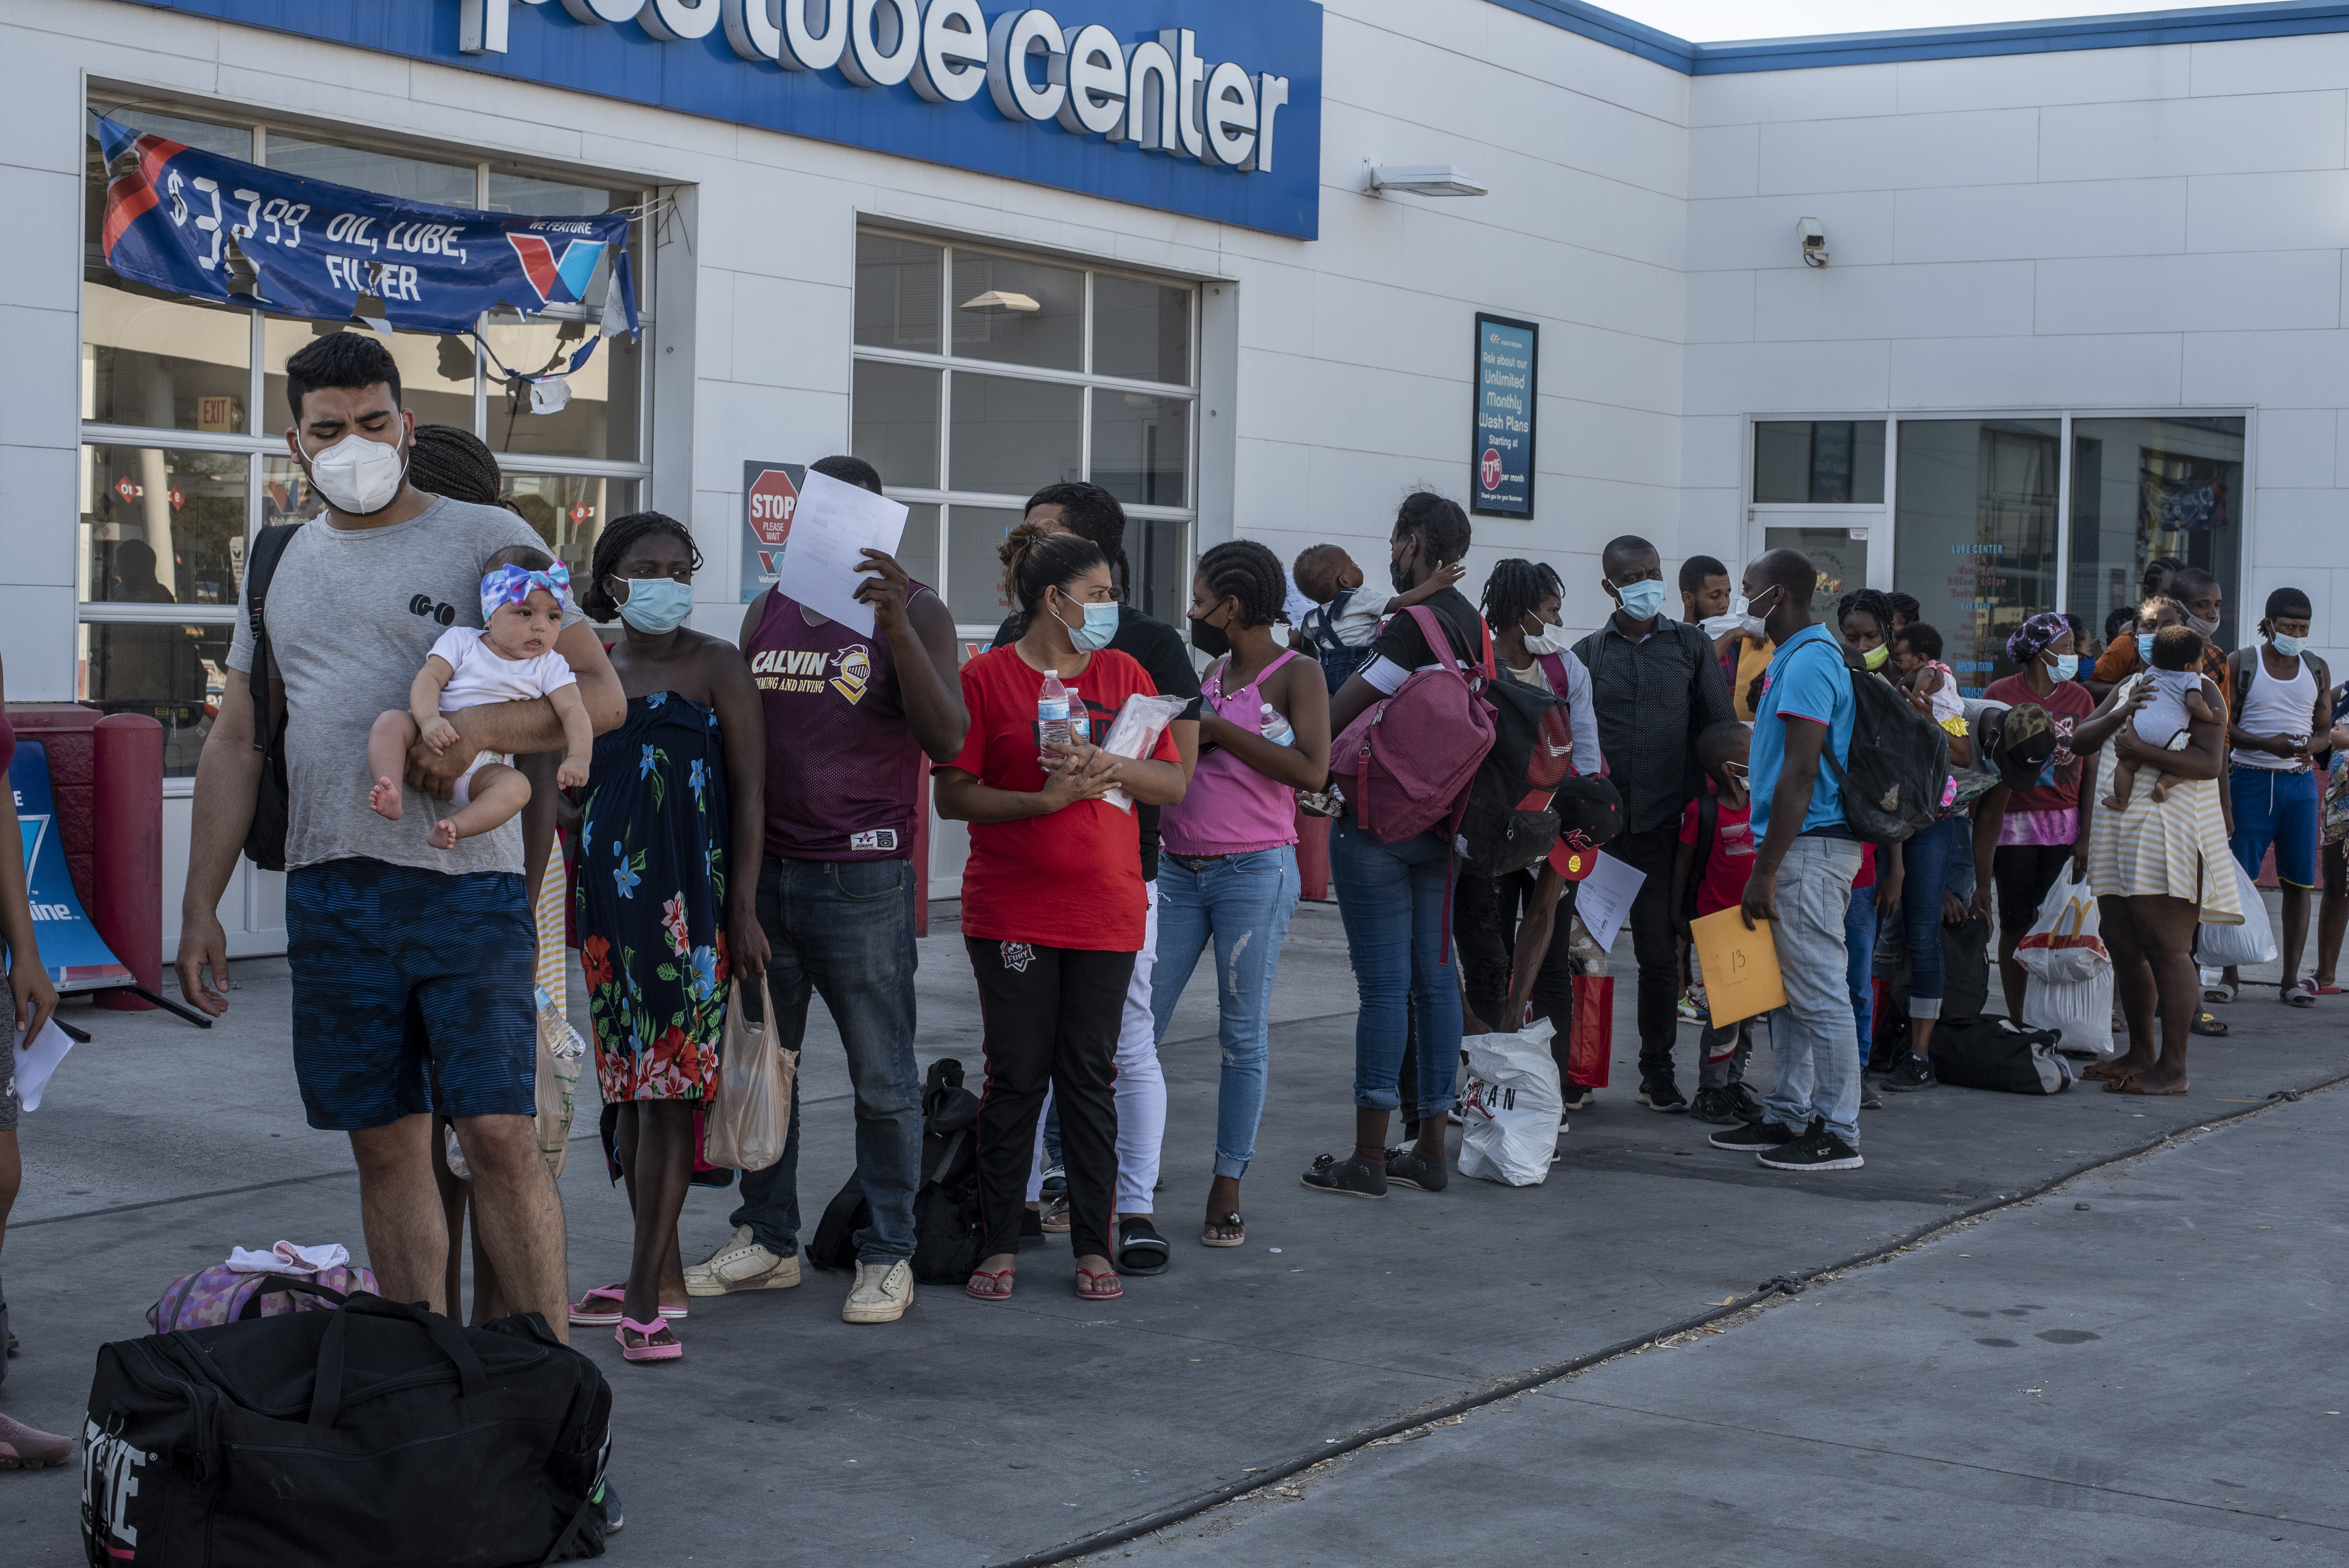 Migrant families wait at a bus stop Sunday in Del Rio, Texas, where thousands of migrants, mostly from Haiti, have recently gathered amid food shortages and deteriorating sanitary conditions. MUST CREDIT: Photo by Sergio Flores for The Washington Post